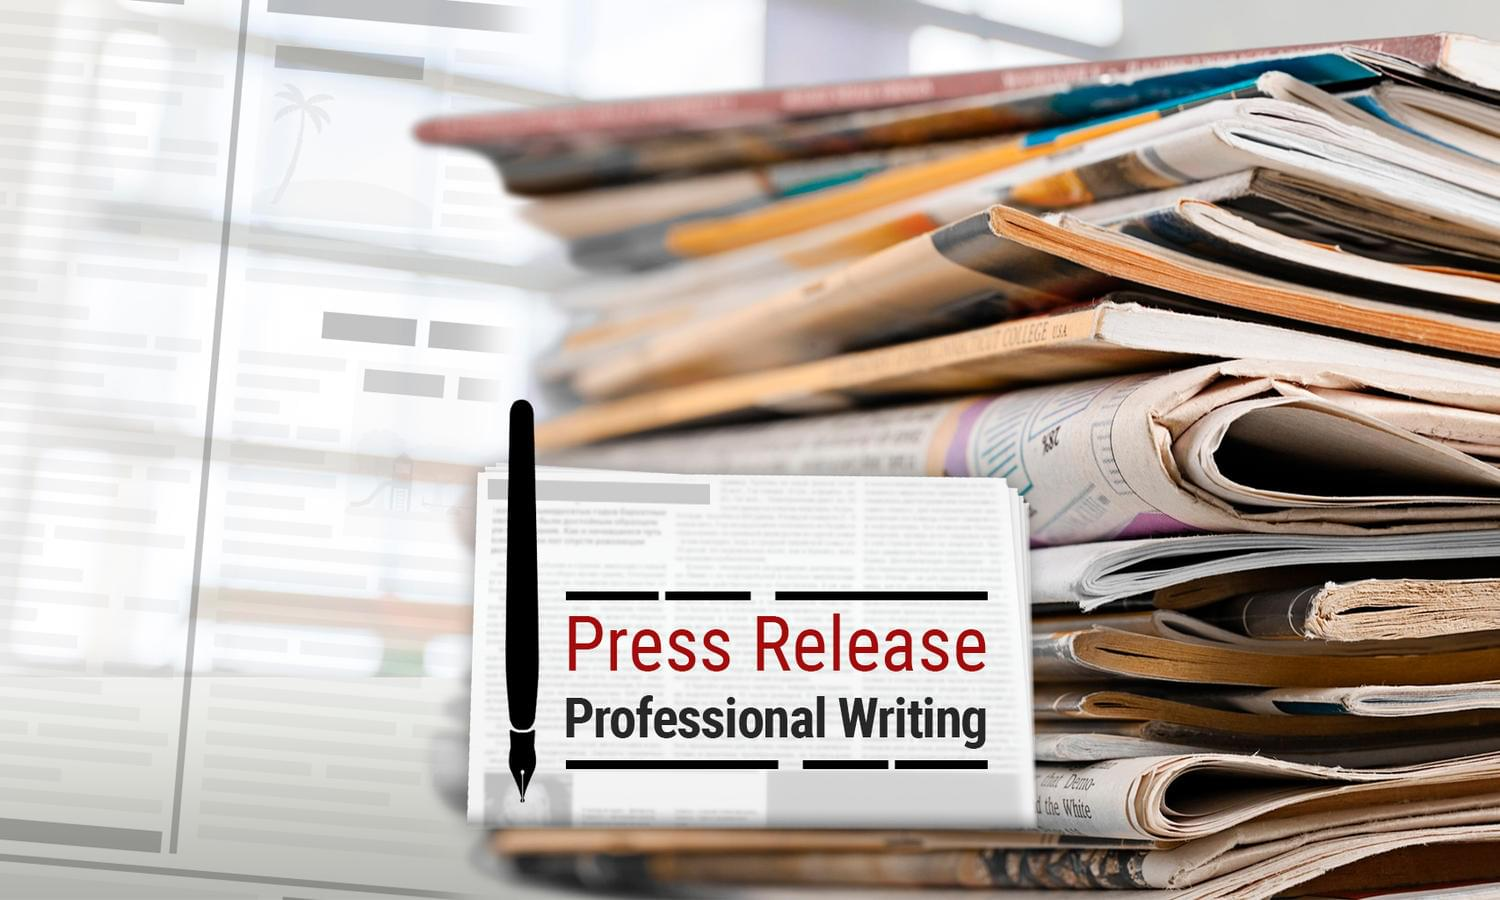 Press Release Professional Writing by madridnyc - 111681